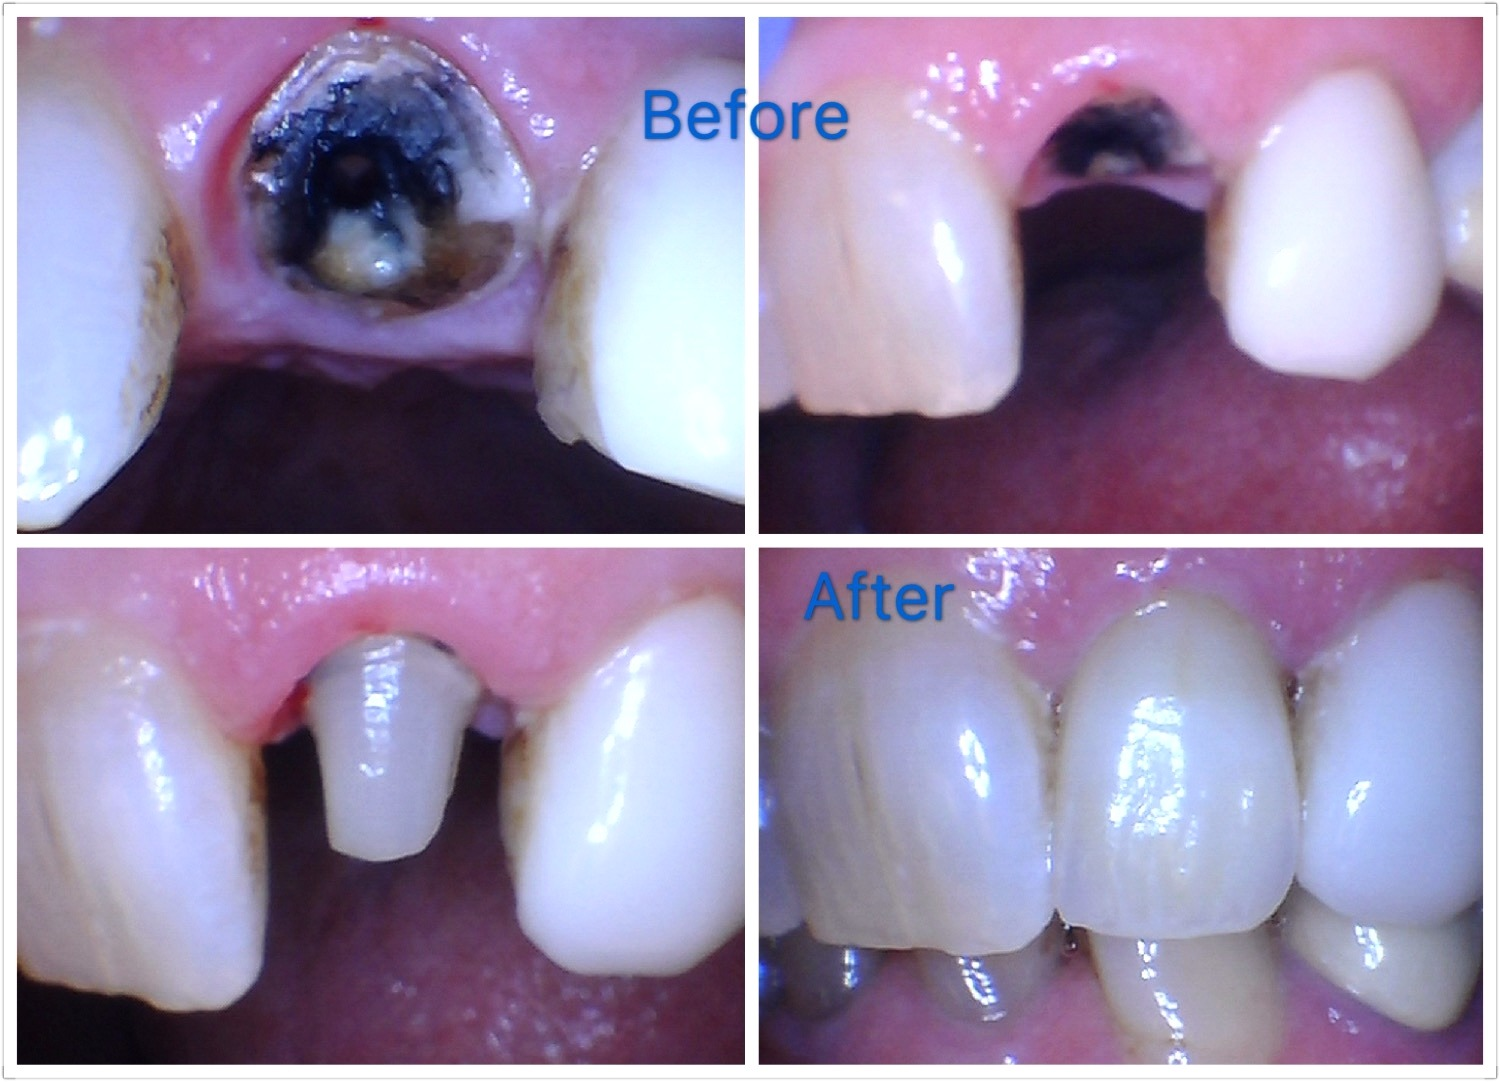 Before & After Crown treatment